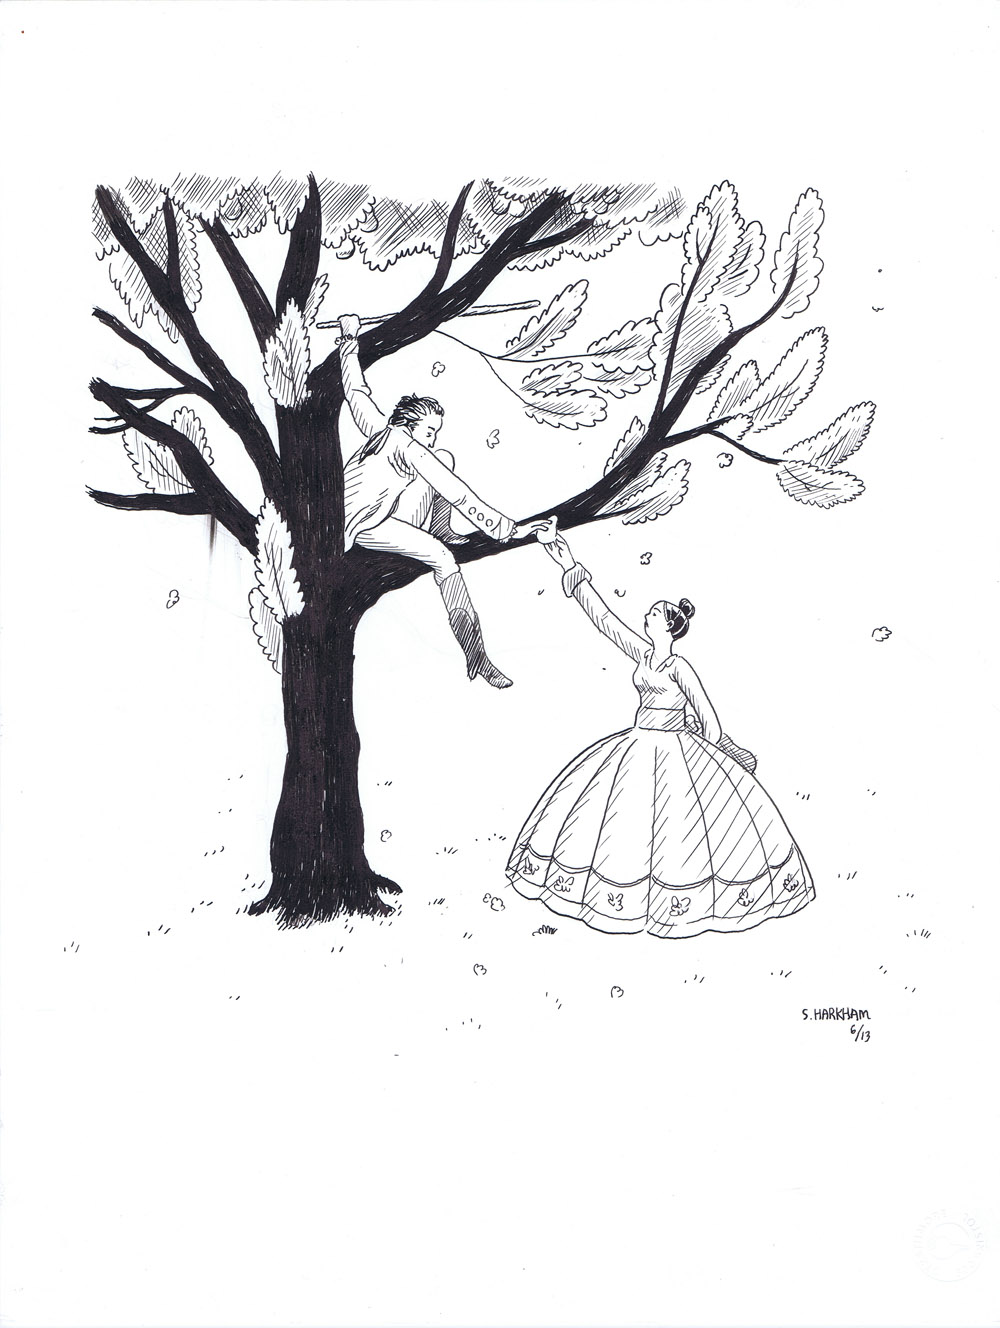 Apology Magazine Illustration - Goethe in the Pear Tree